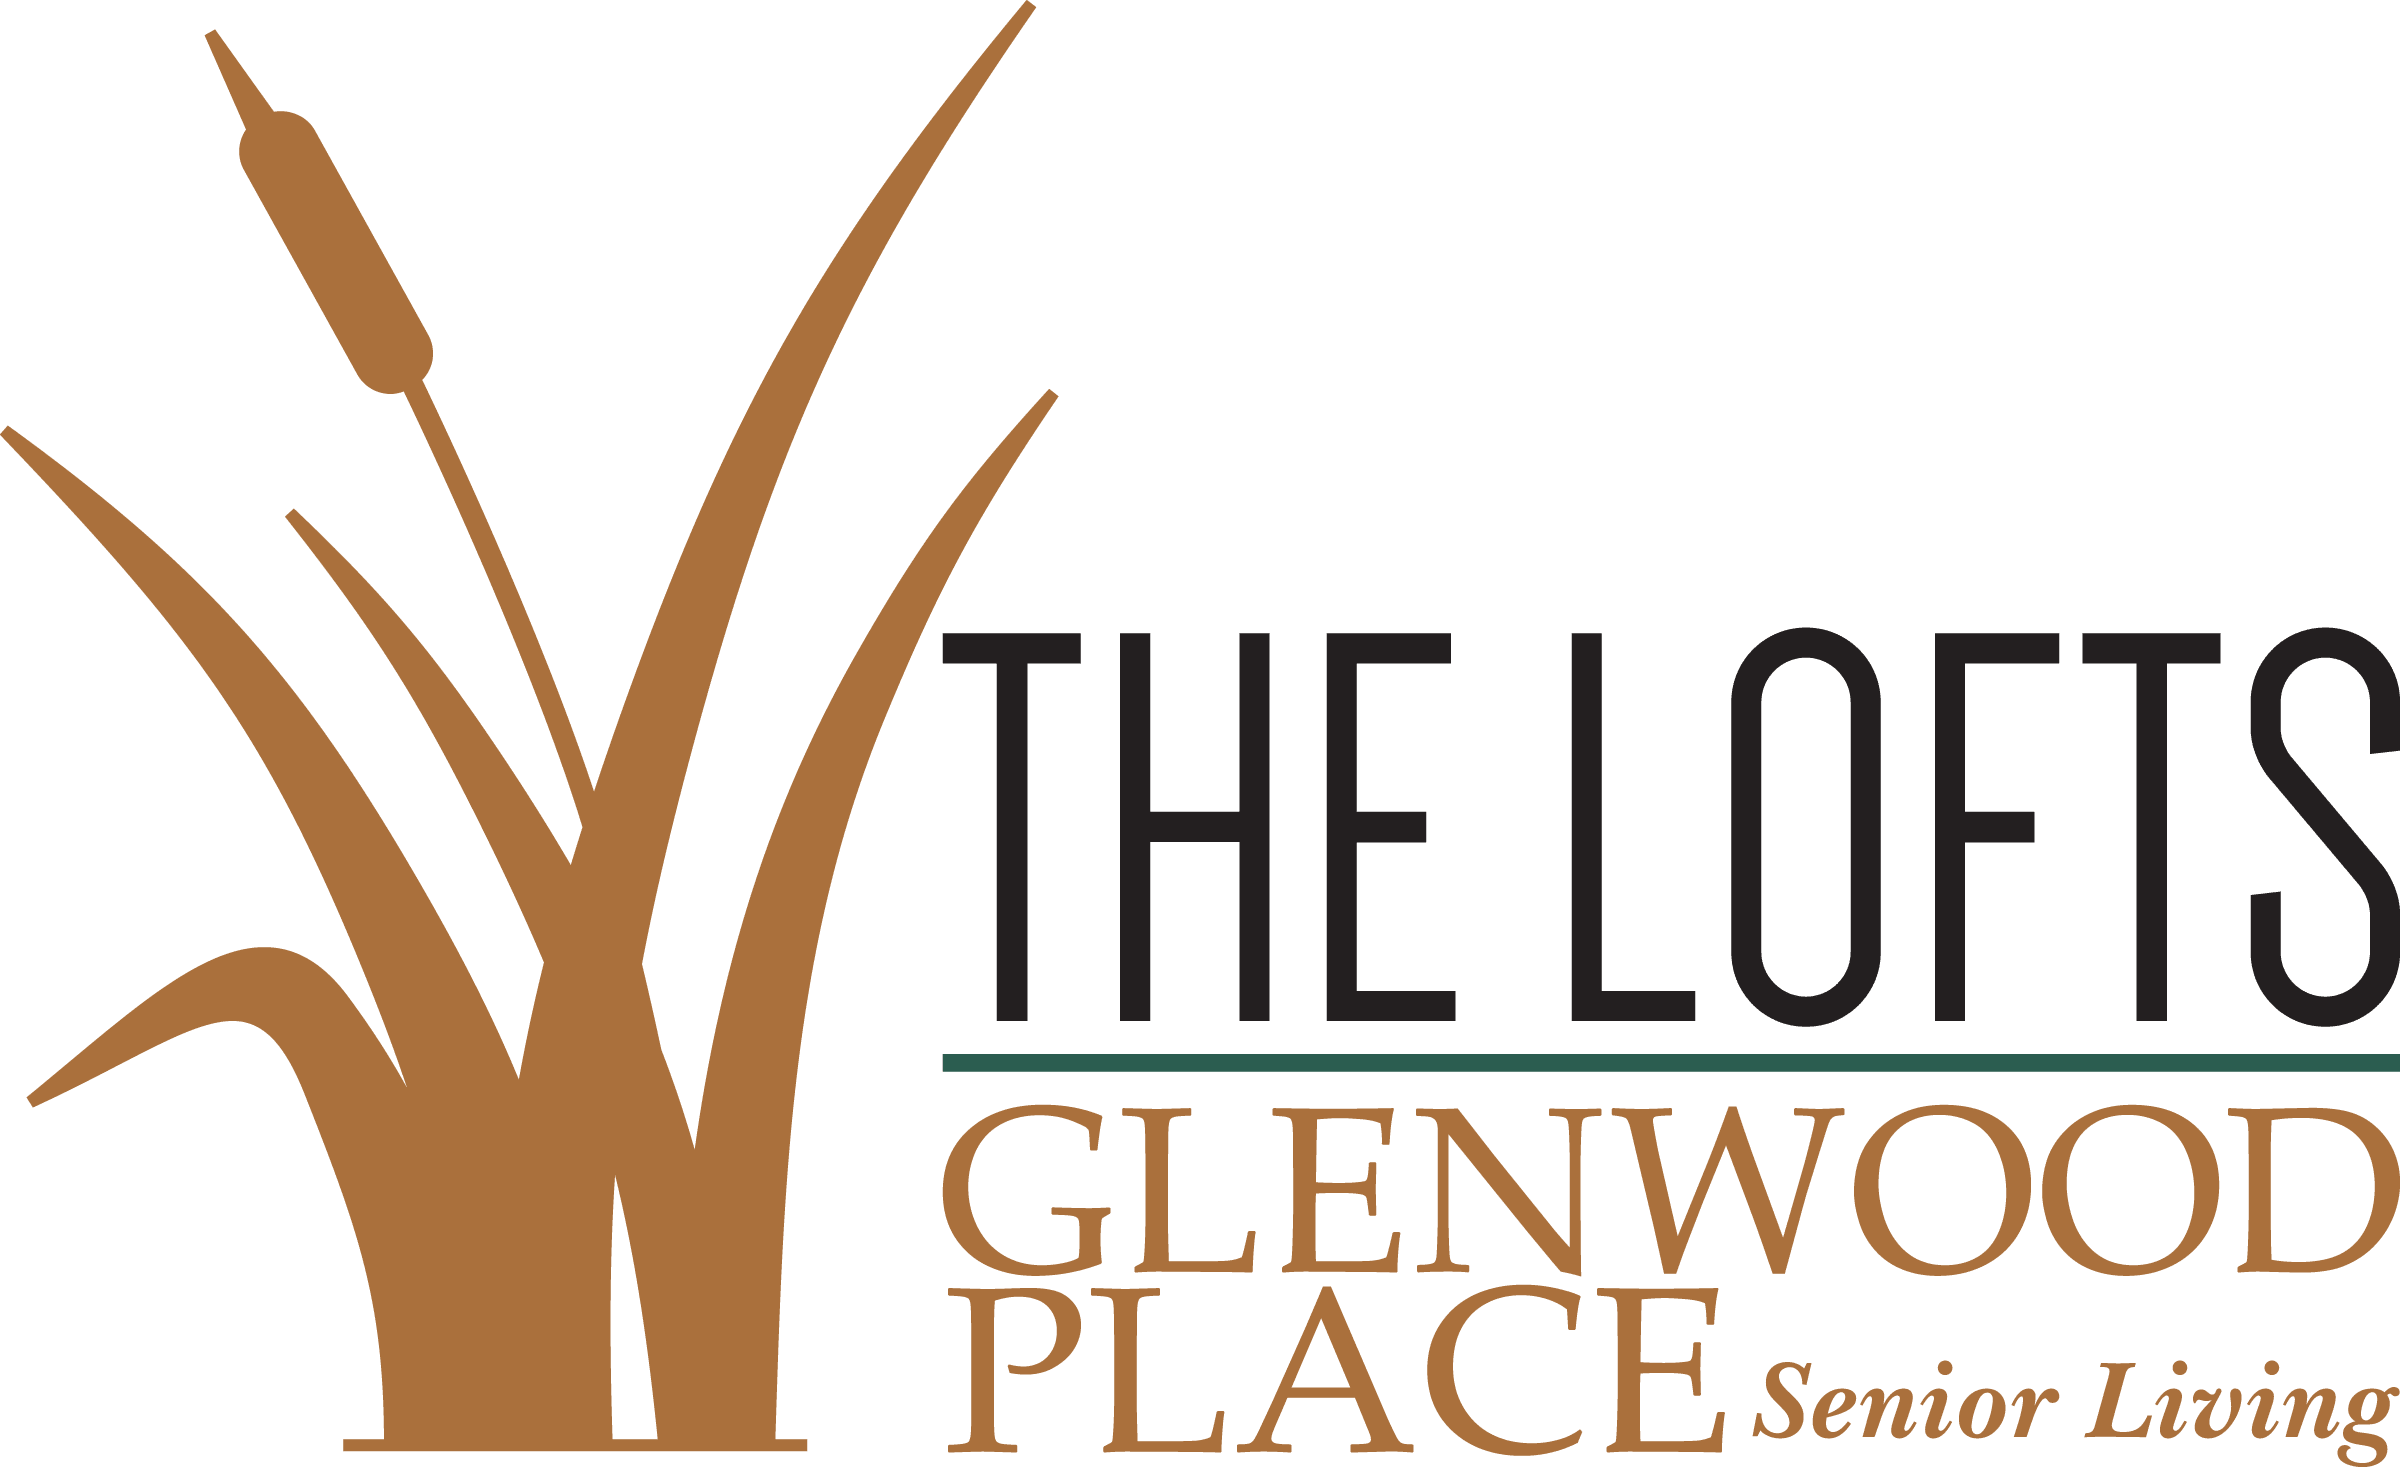 The Lofts at Glenwood Place